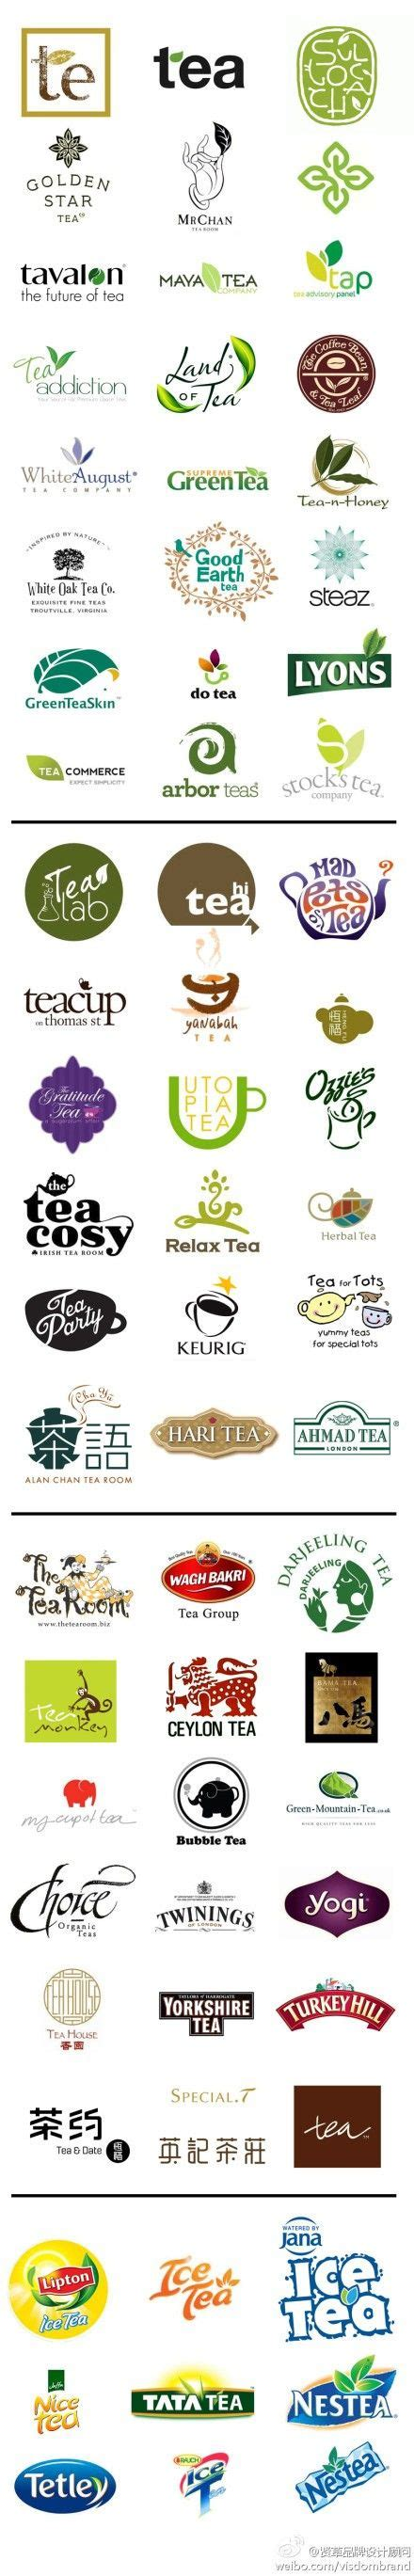 food and drink logos and names that start with e www